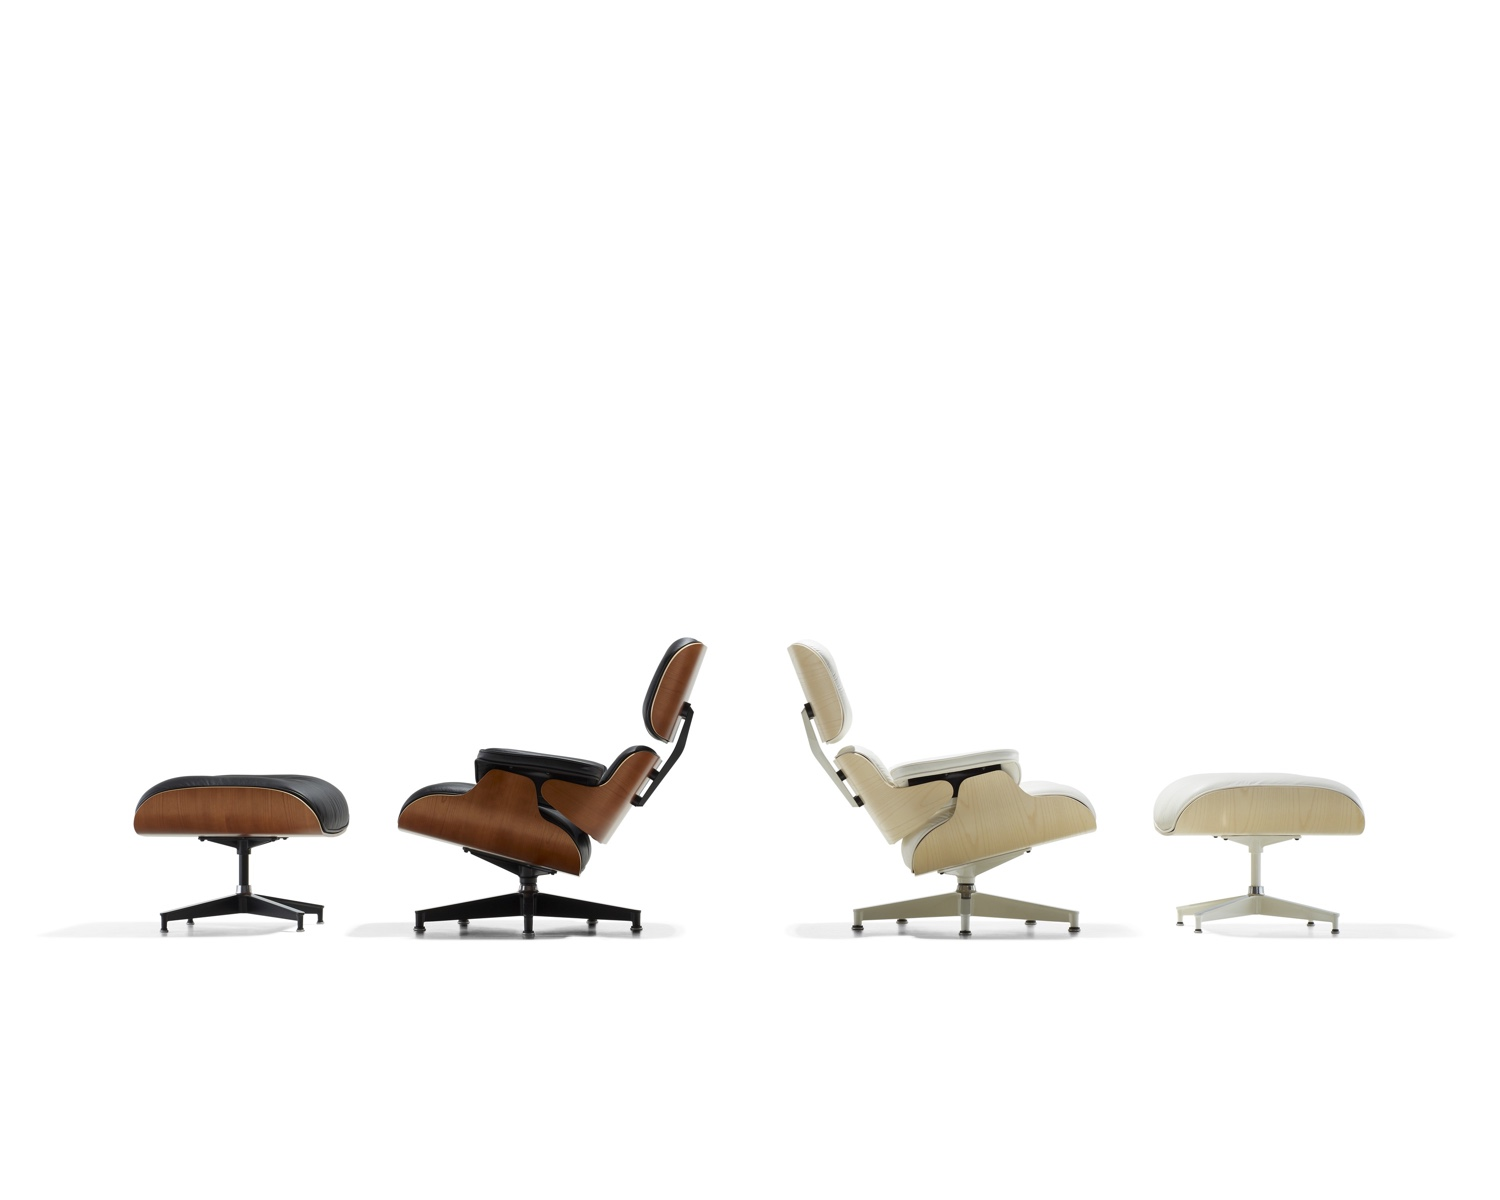 The Eames Lounge Chair and Ottoman and walnut and white ash. Image © 2016 Herman Miller, Inc.